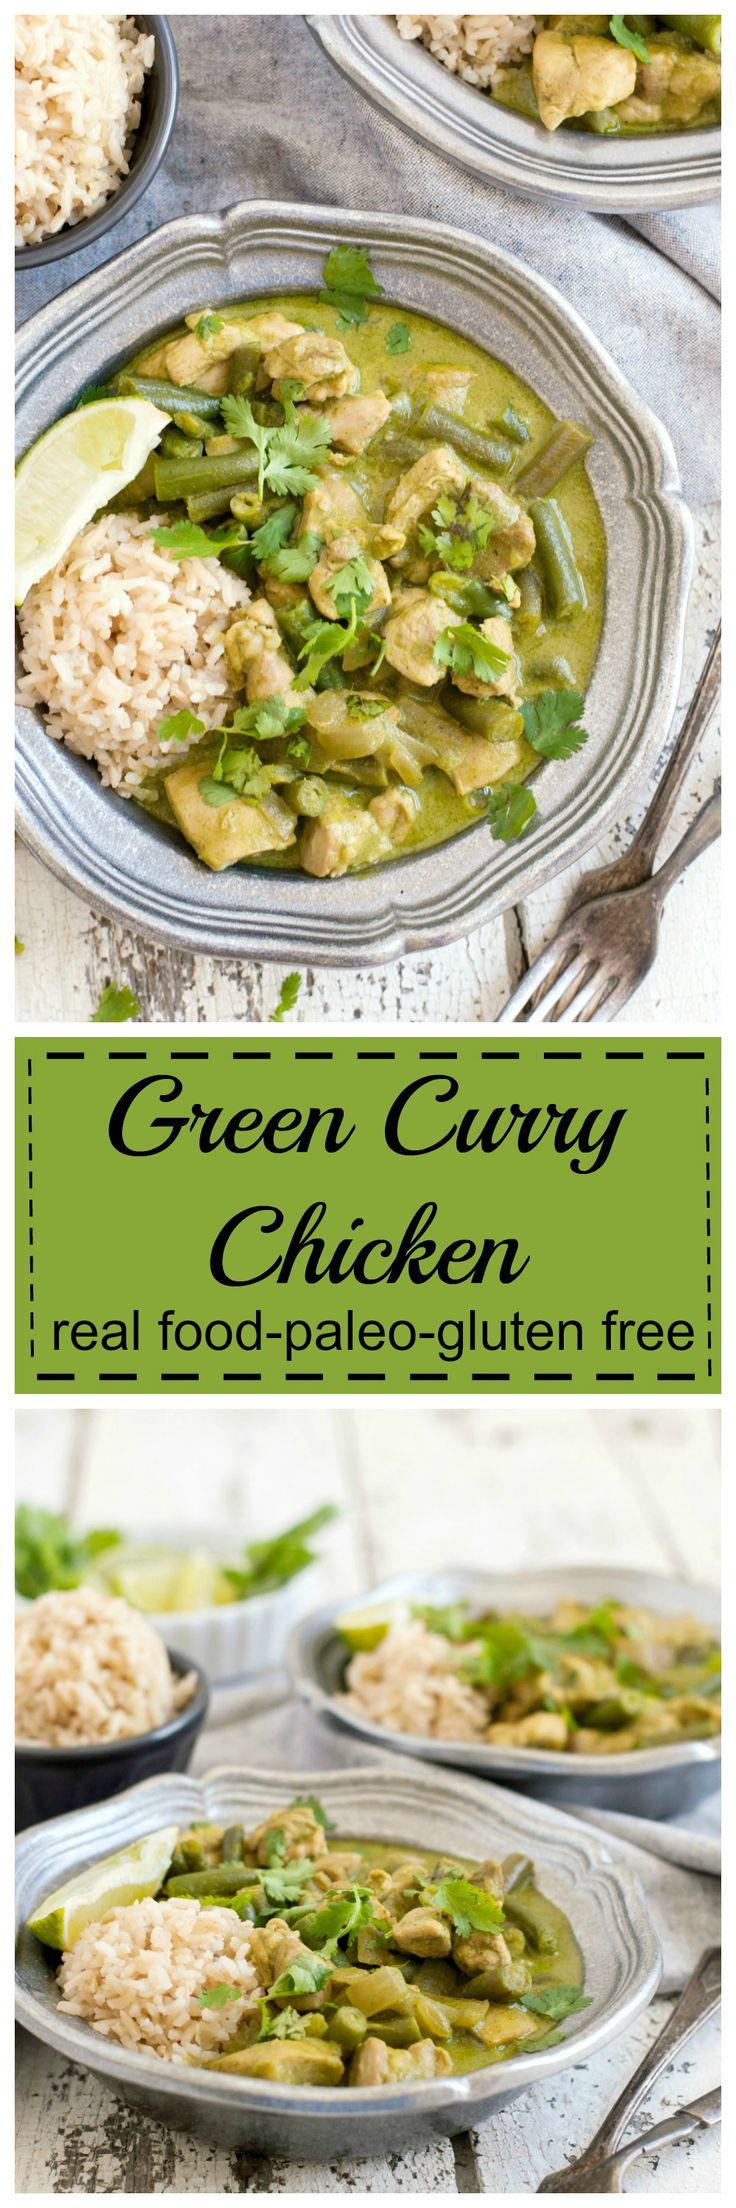 While on vacation I discovered a delicious curry dish that I wanted to recreate. After some experimenting, I came up with this Green Curry Chicken.